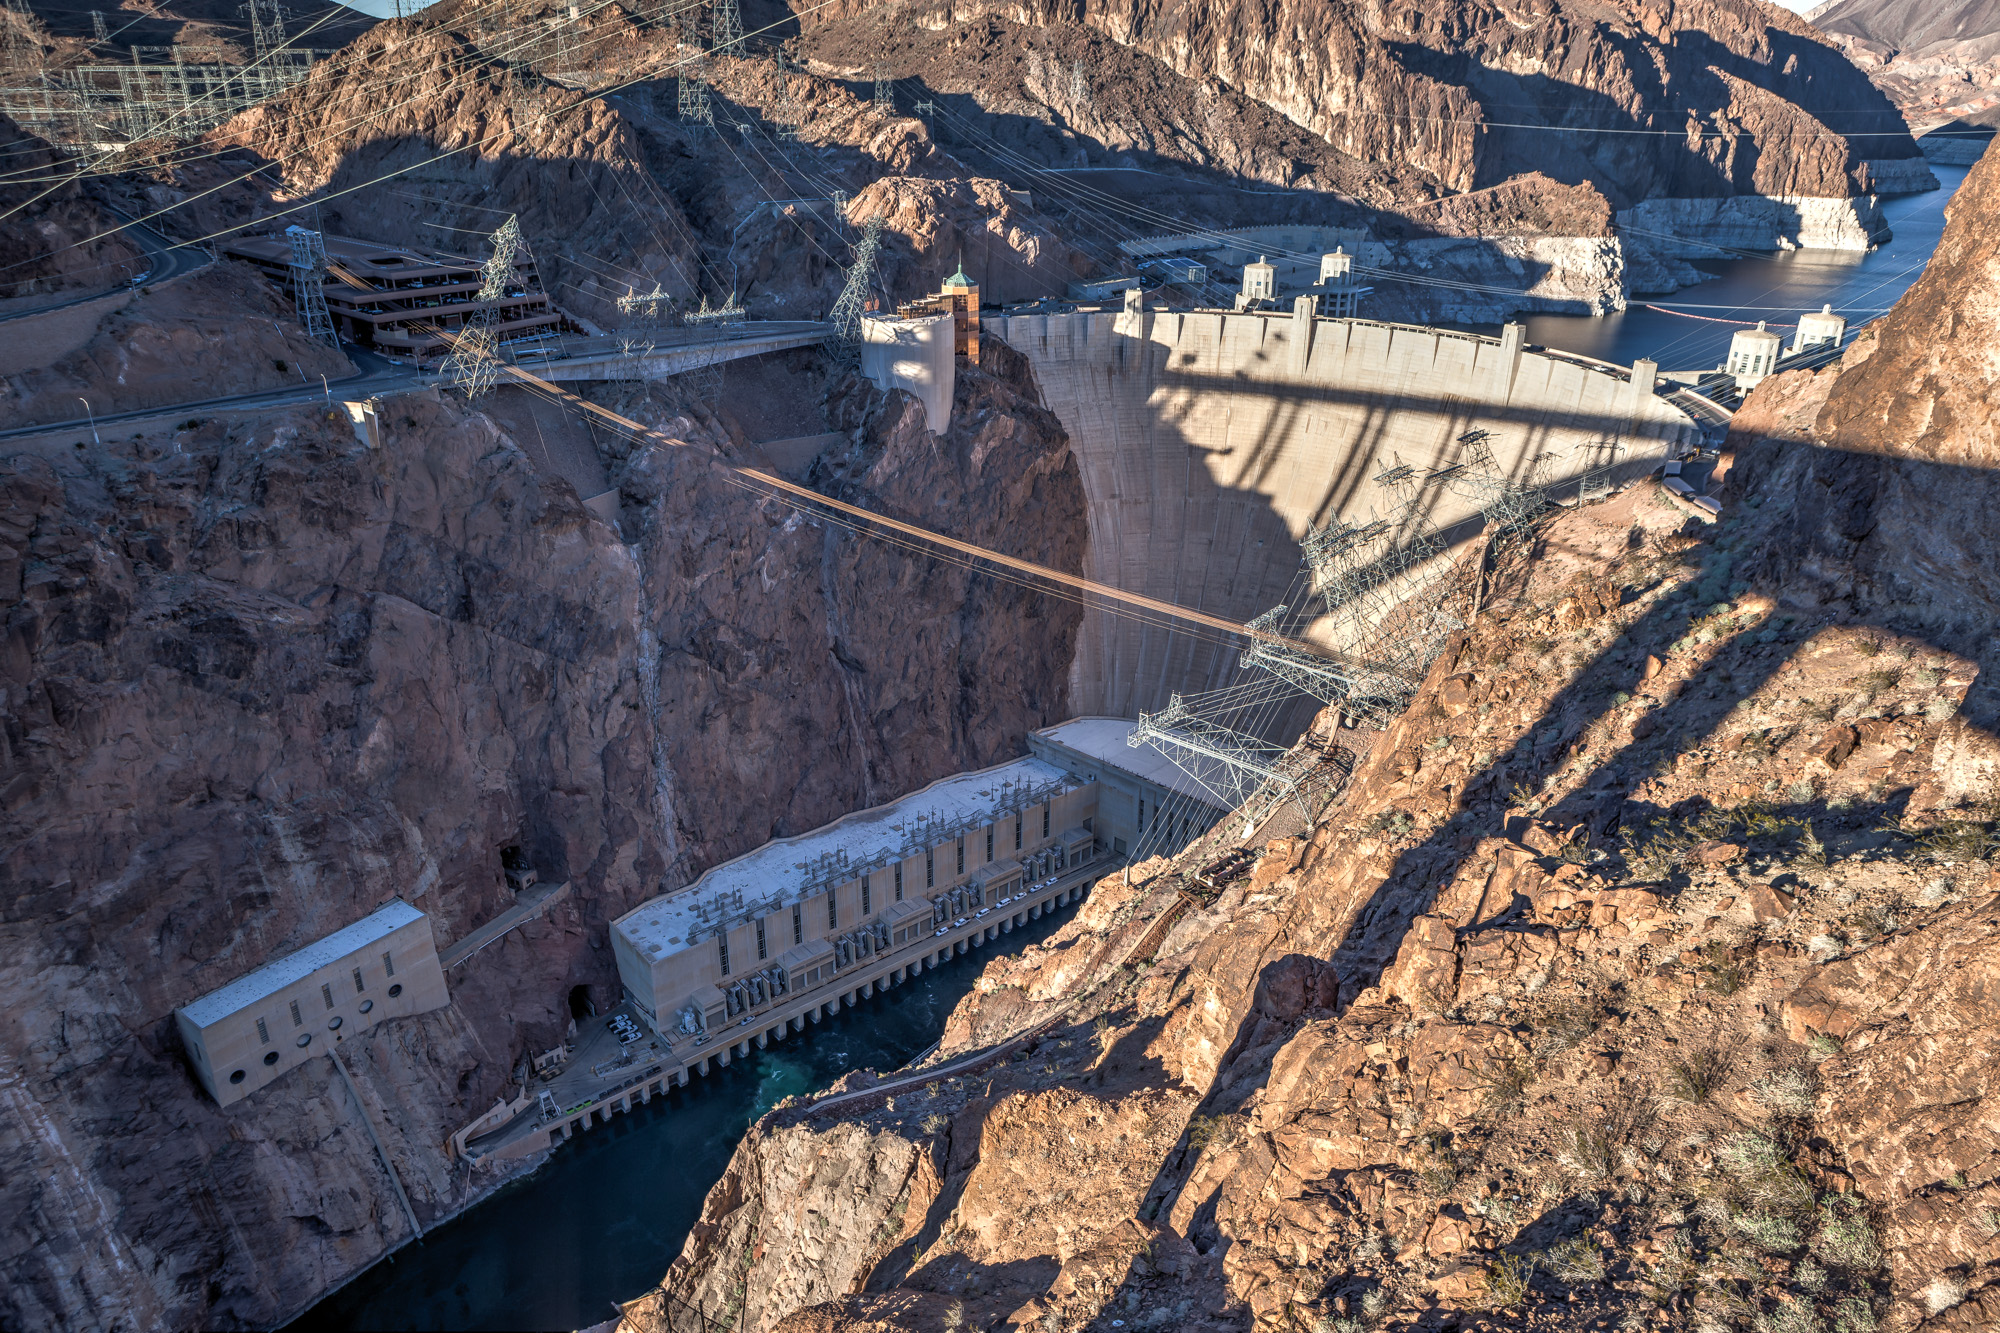 Challenge accepted: Hoover Dam